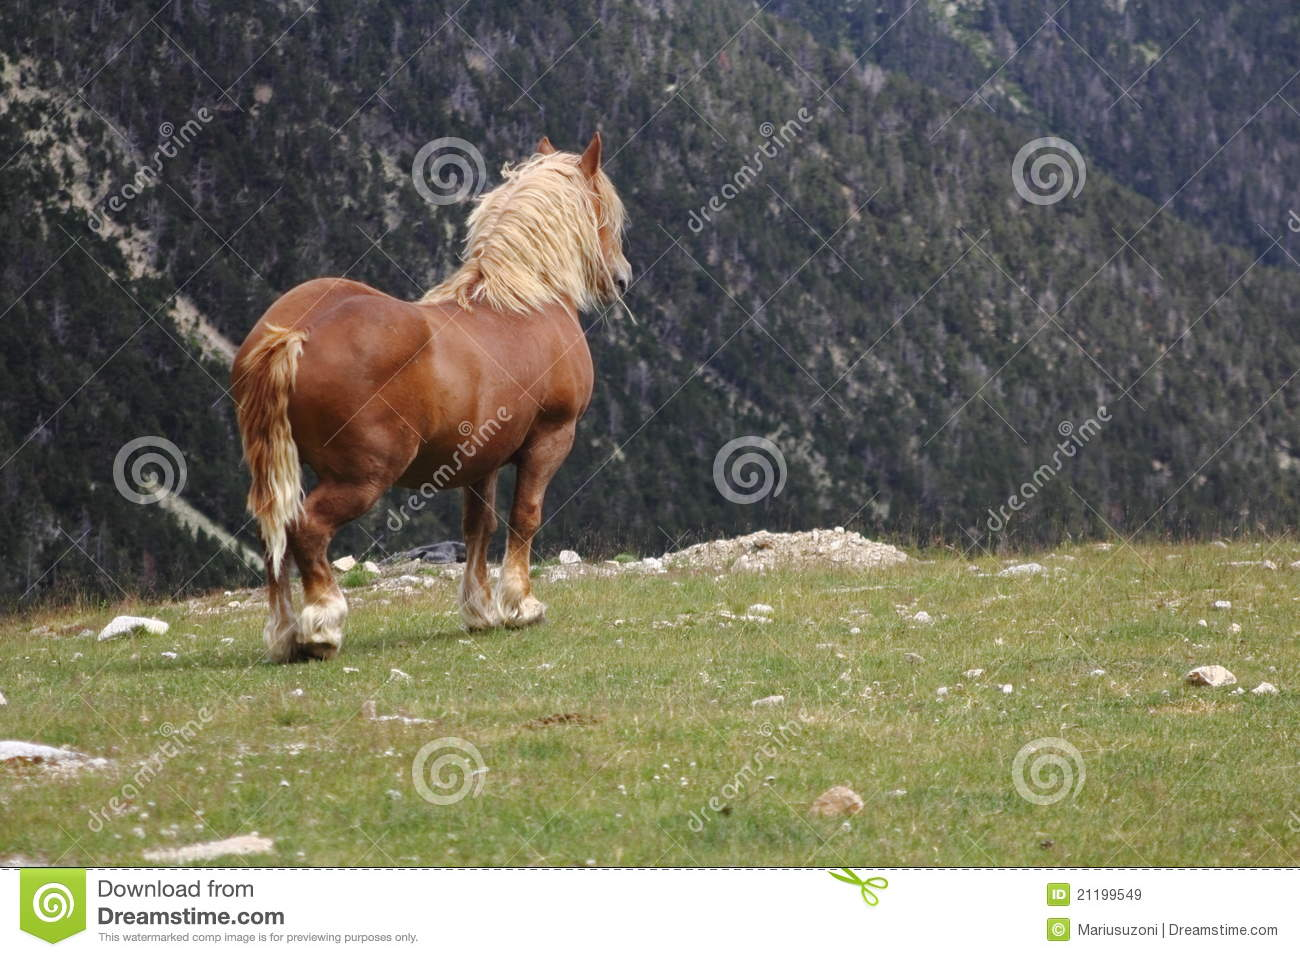 Suffilk Punch horse in the nature